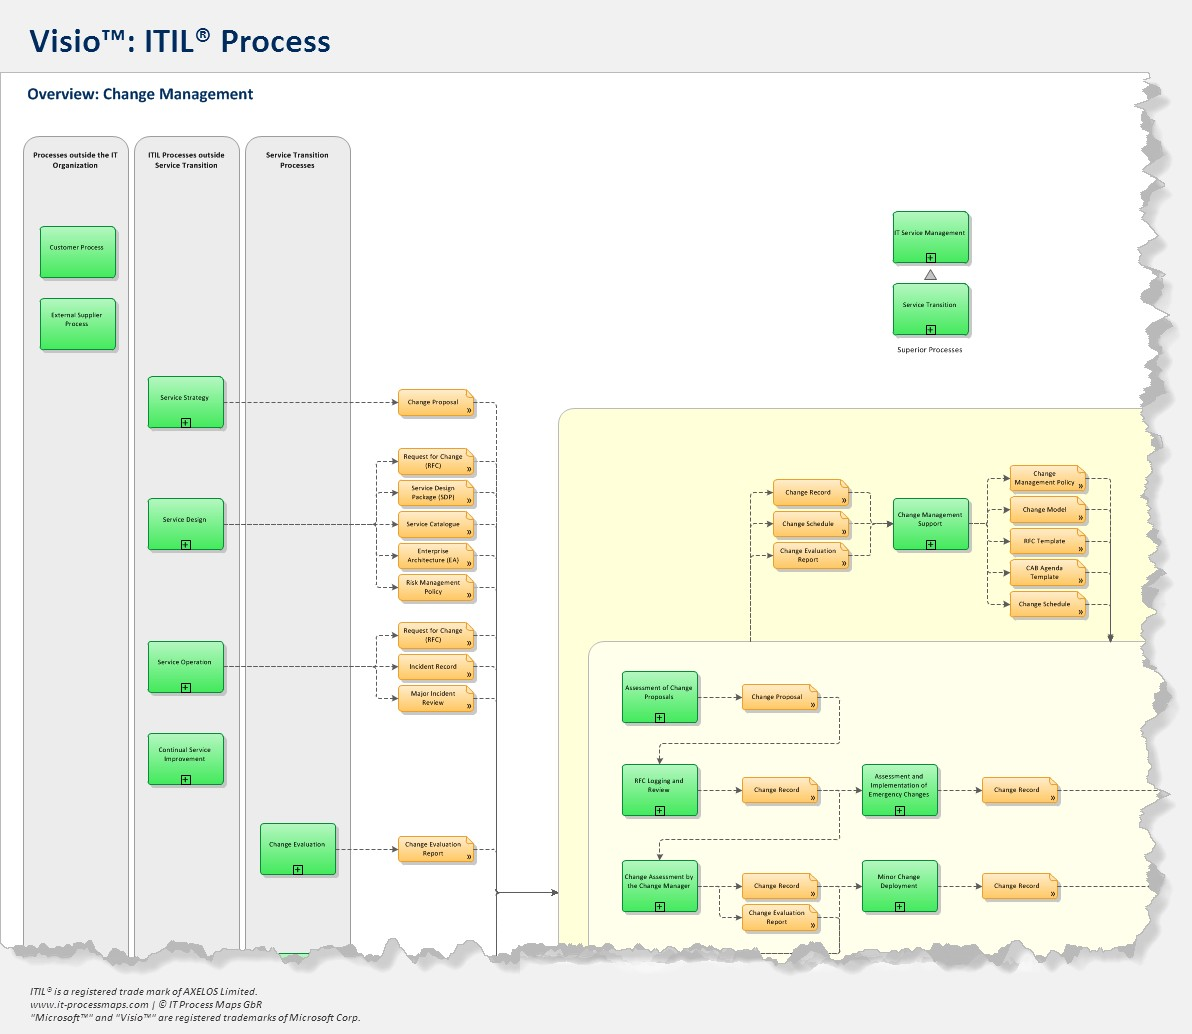 Itil process map for visio for Itil v3 templates